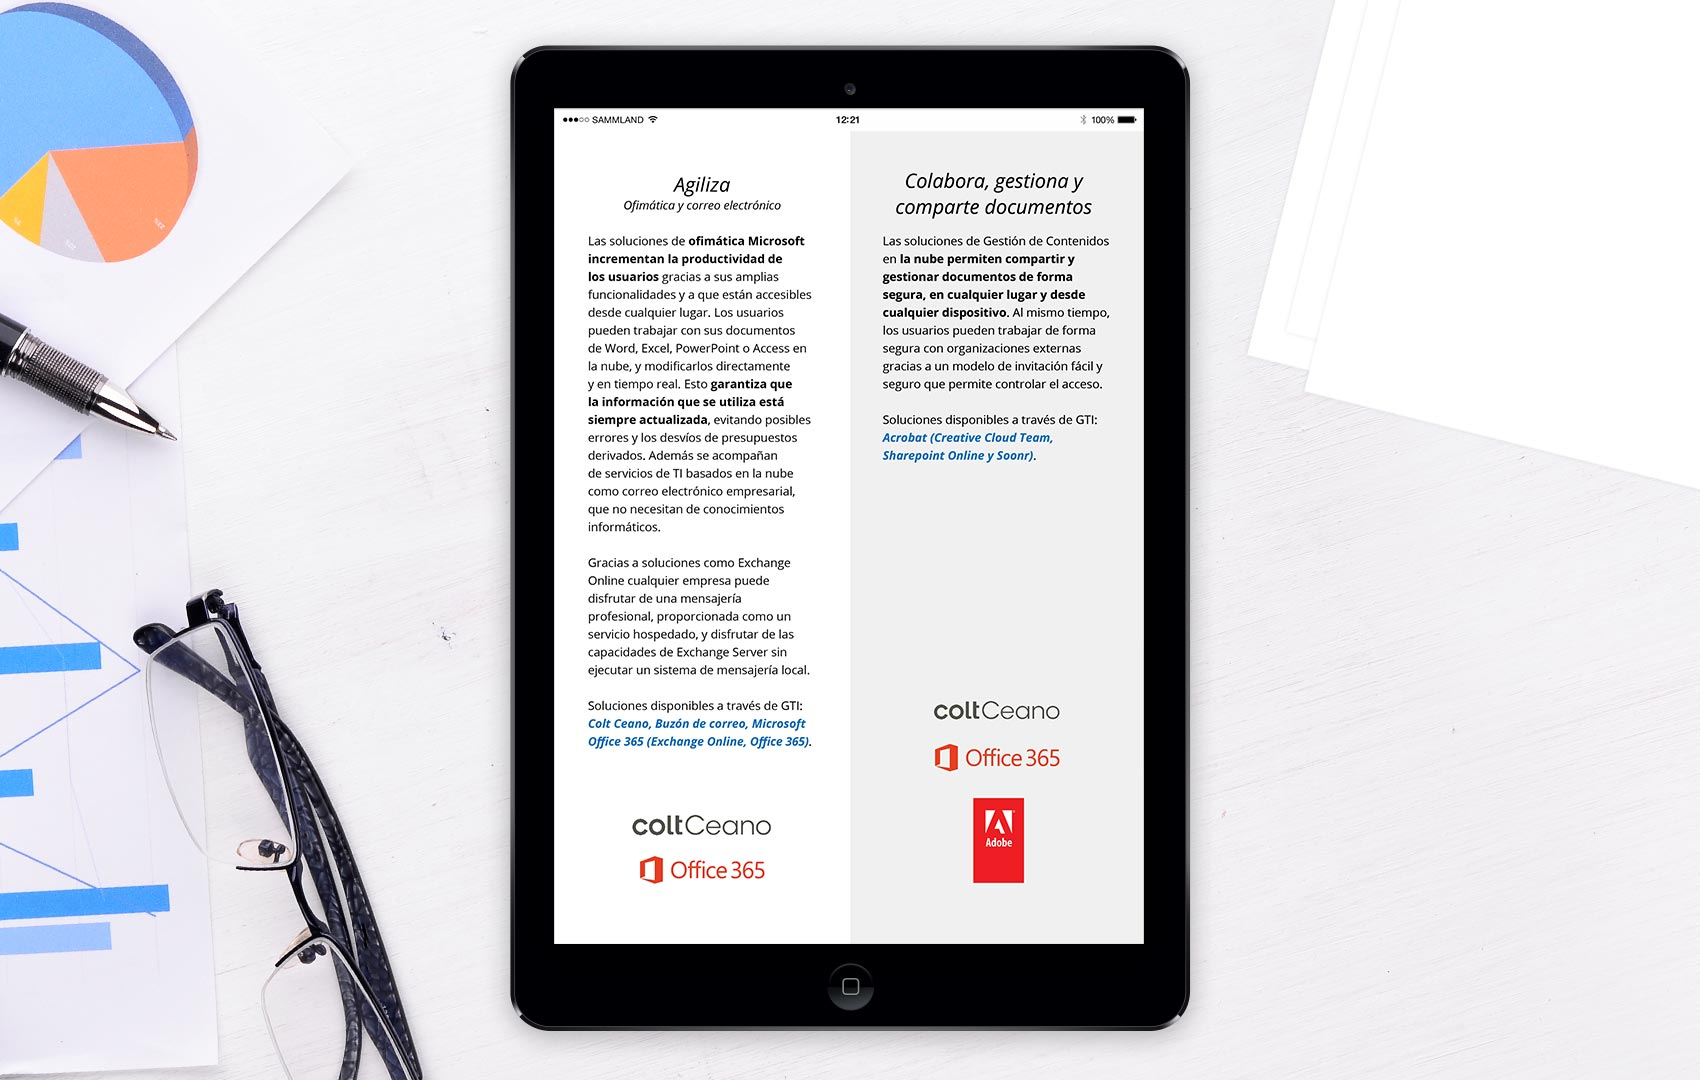 gti-content-marketing-diseño-grafico-editorial-maquetacion-ebook-vendercloud-11